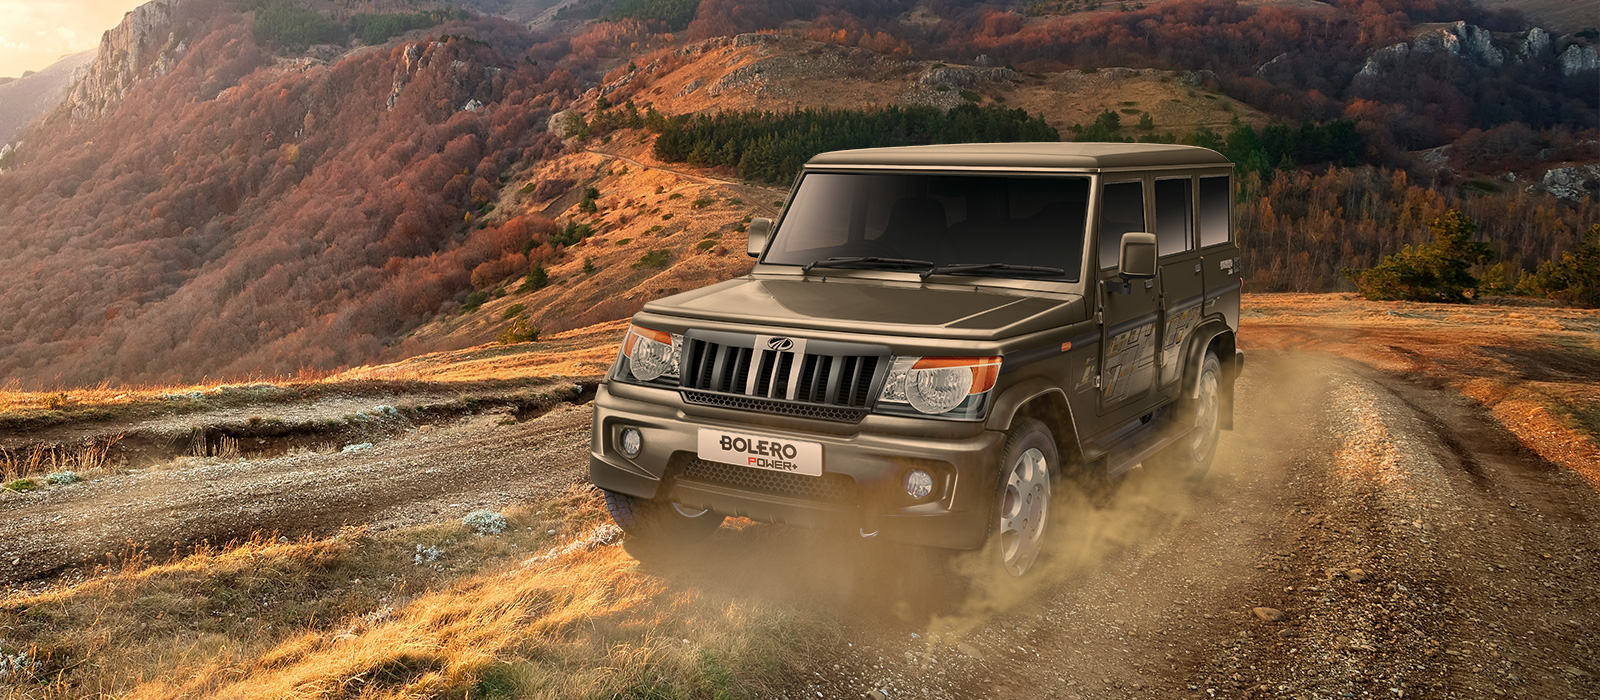 Mahindra Bolero to now get ABS and airbags